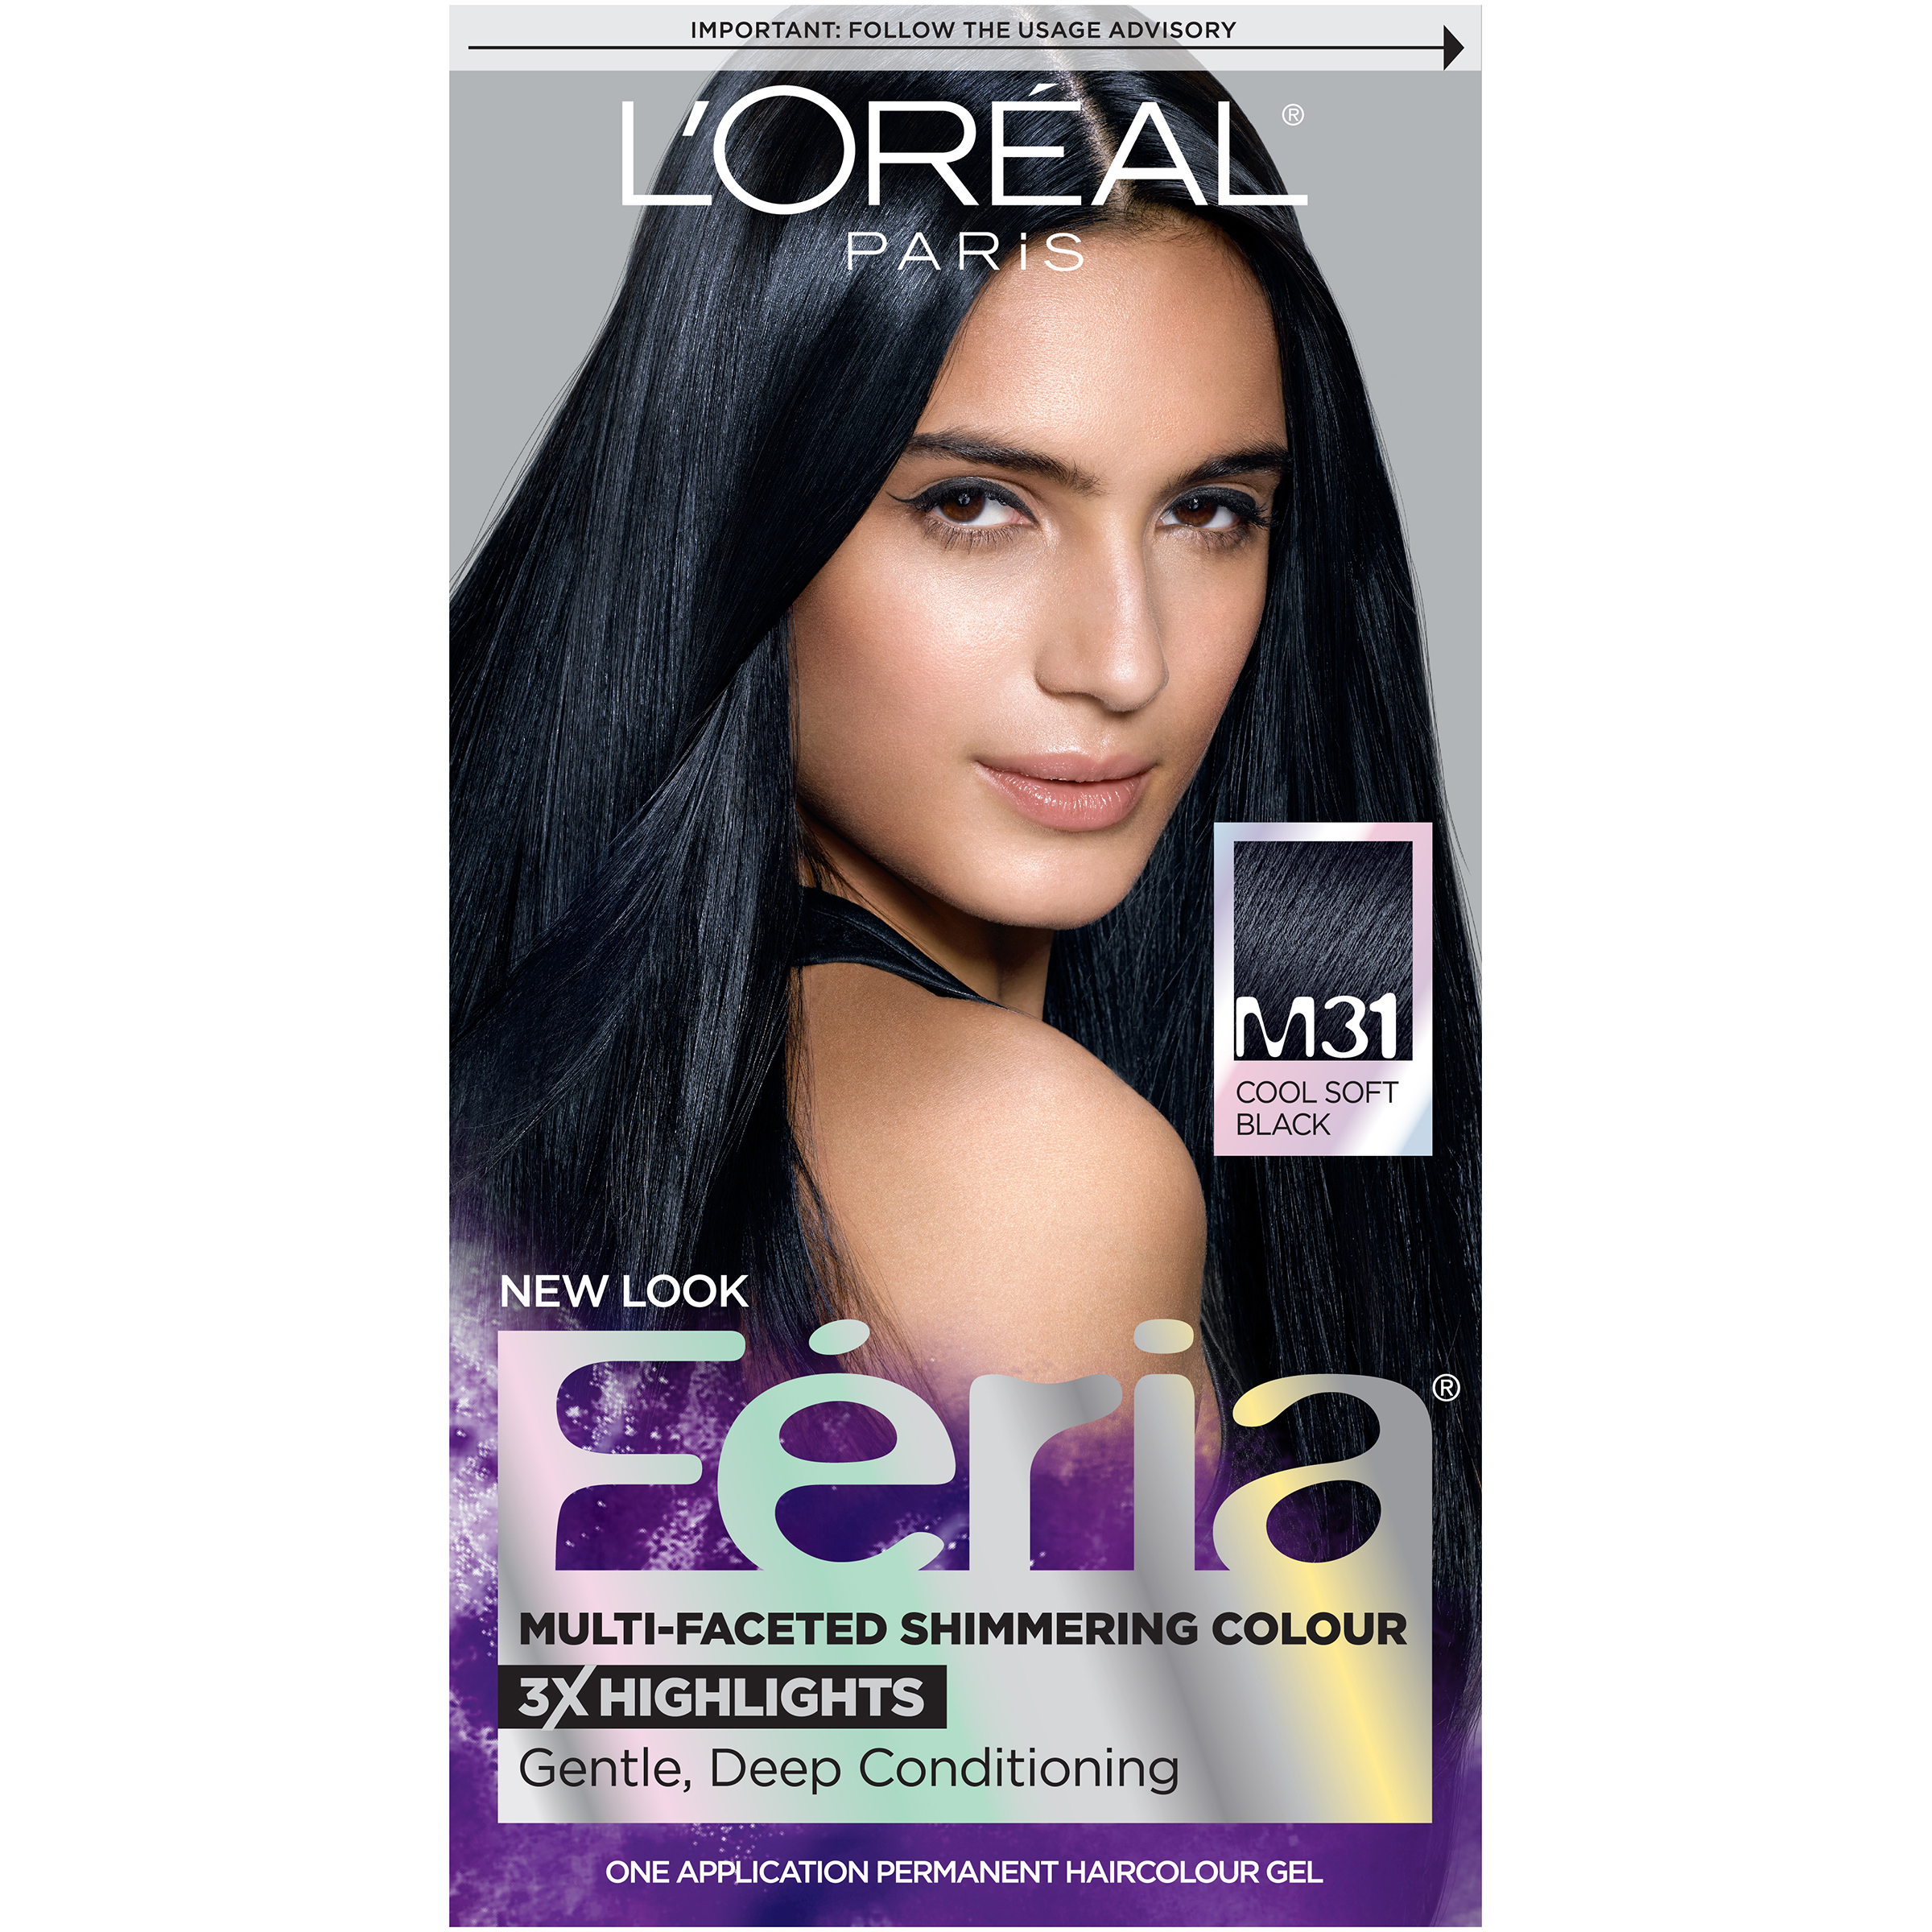 Loreal Paris Feria Midnight Moon Hair Color M31 Cooler Cool Soft